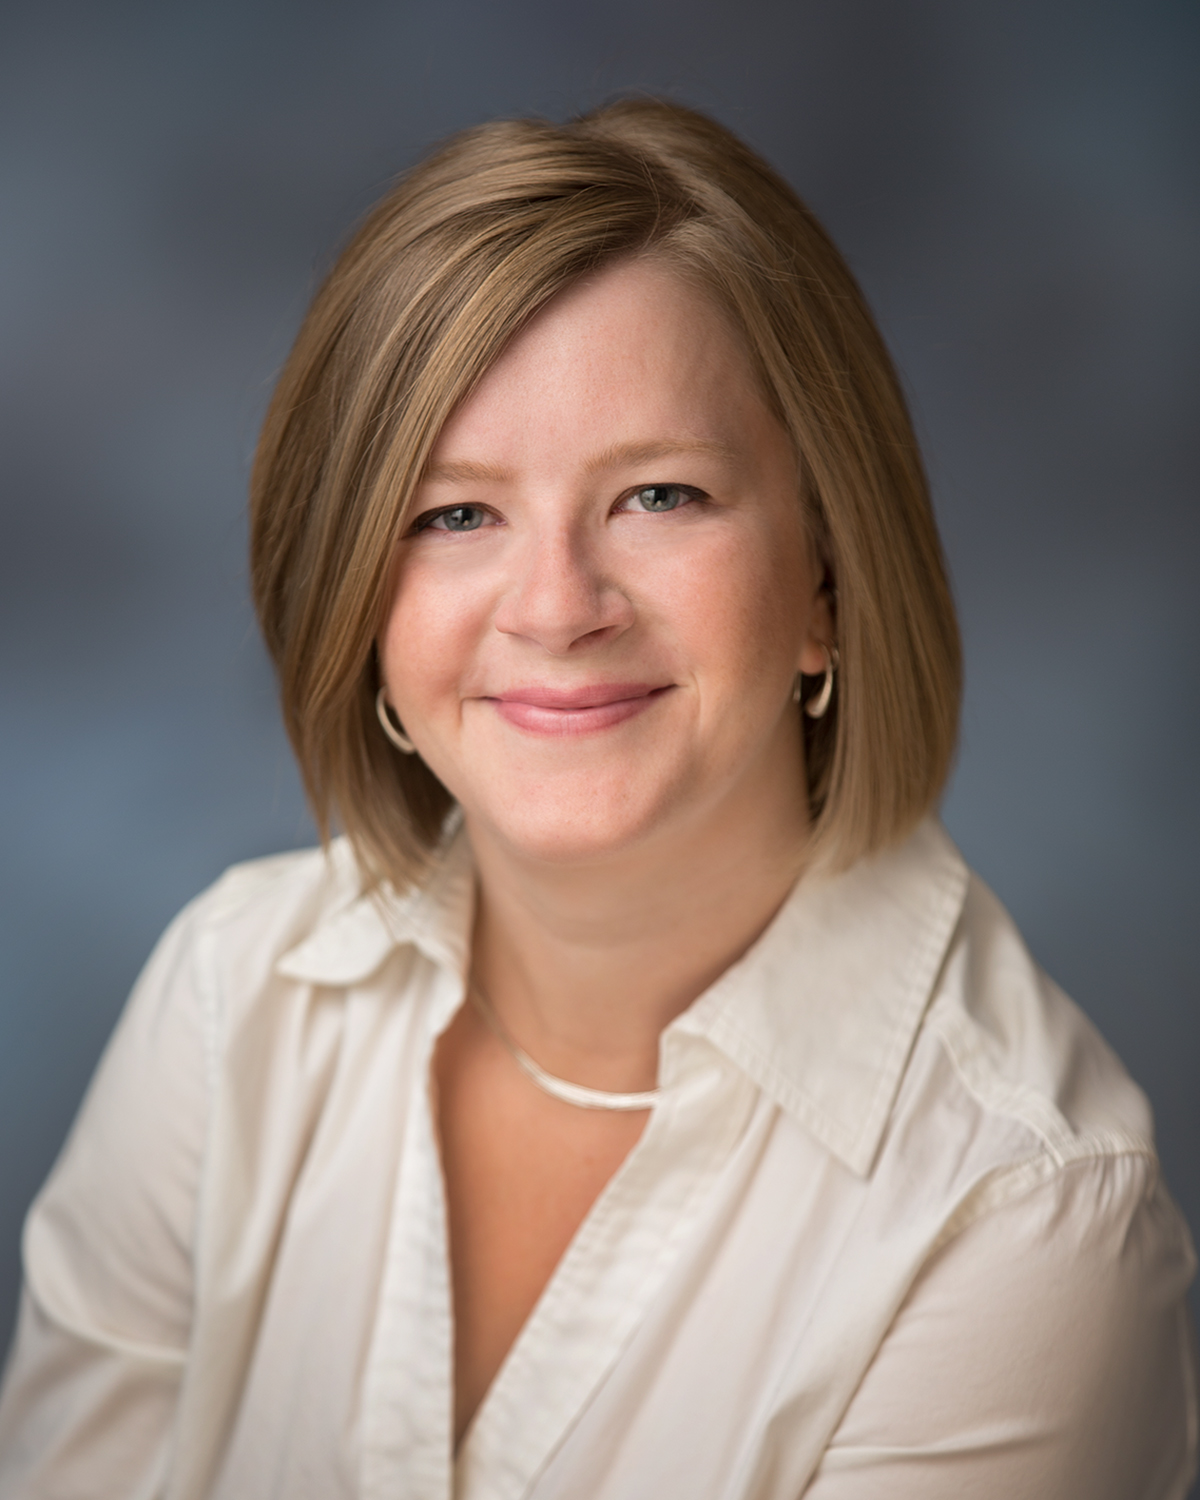 Mary Koski-Vogt, CNM, MSN - Nurse-Midwife, Obstetrics and Gynecology, Portland, OR